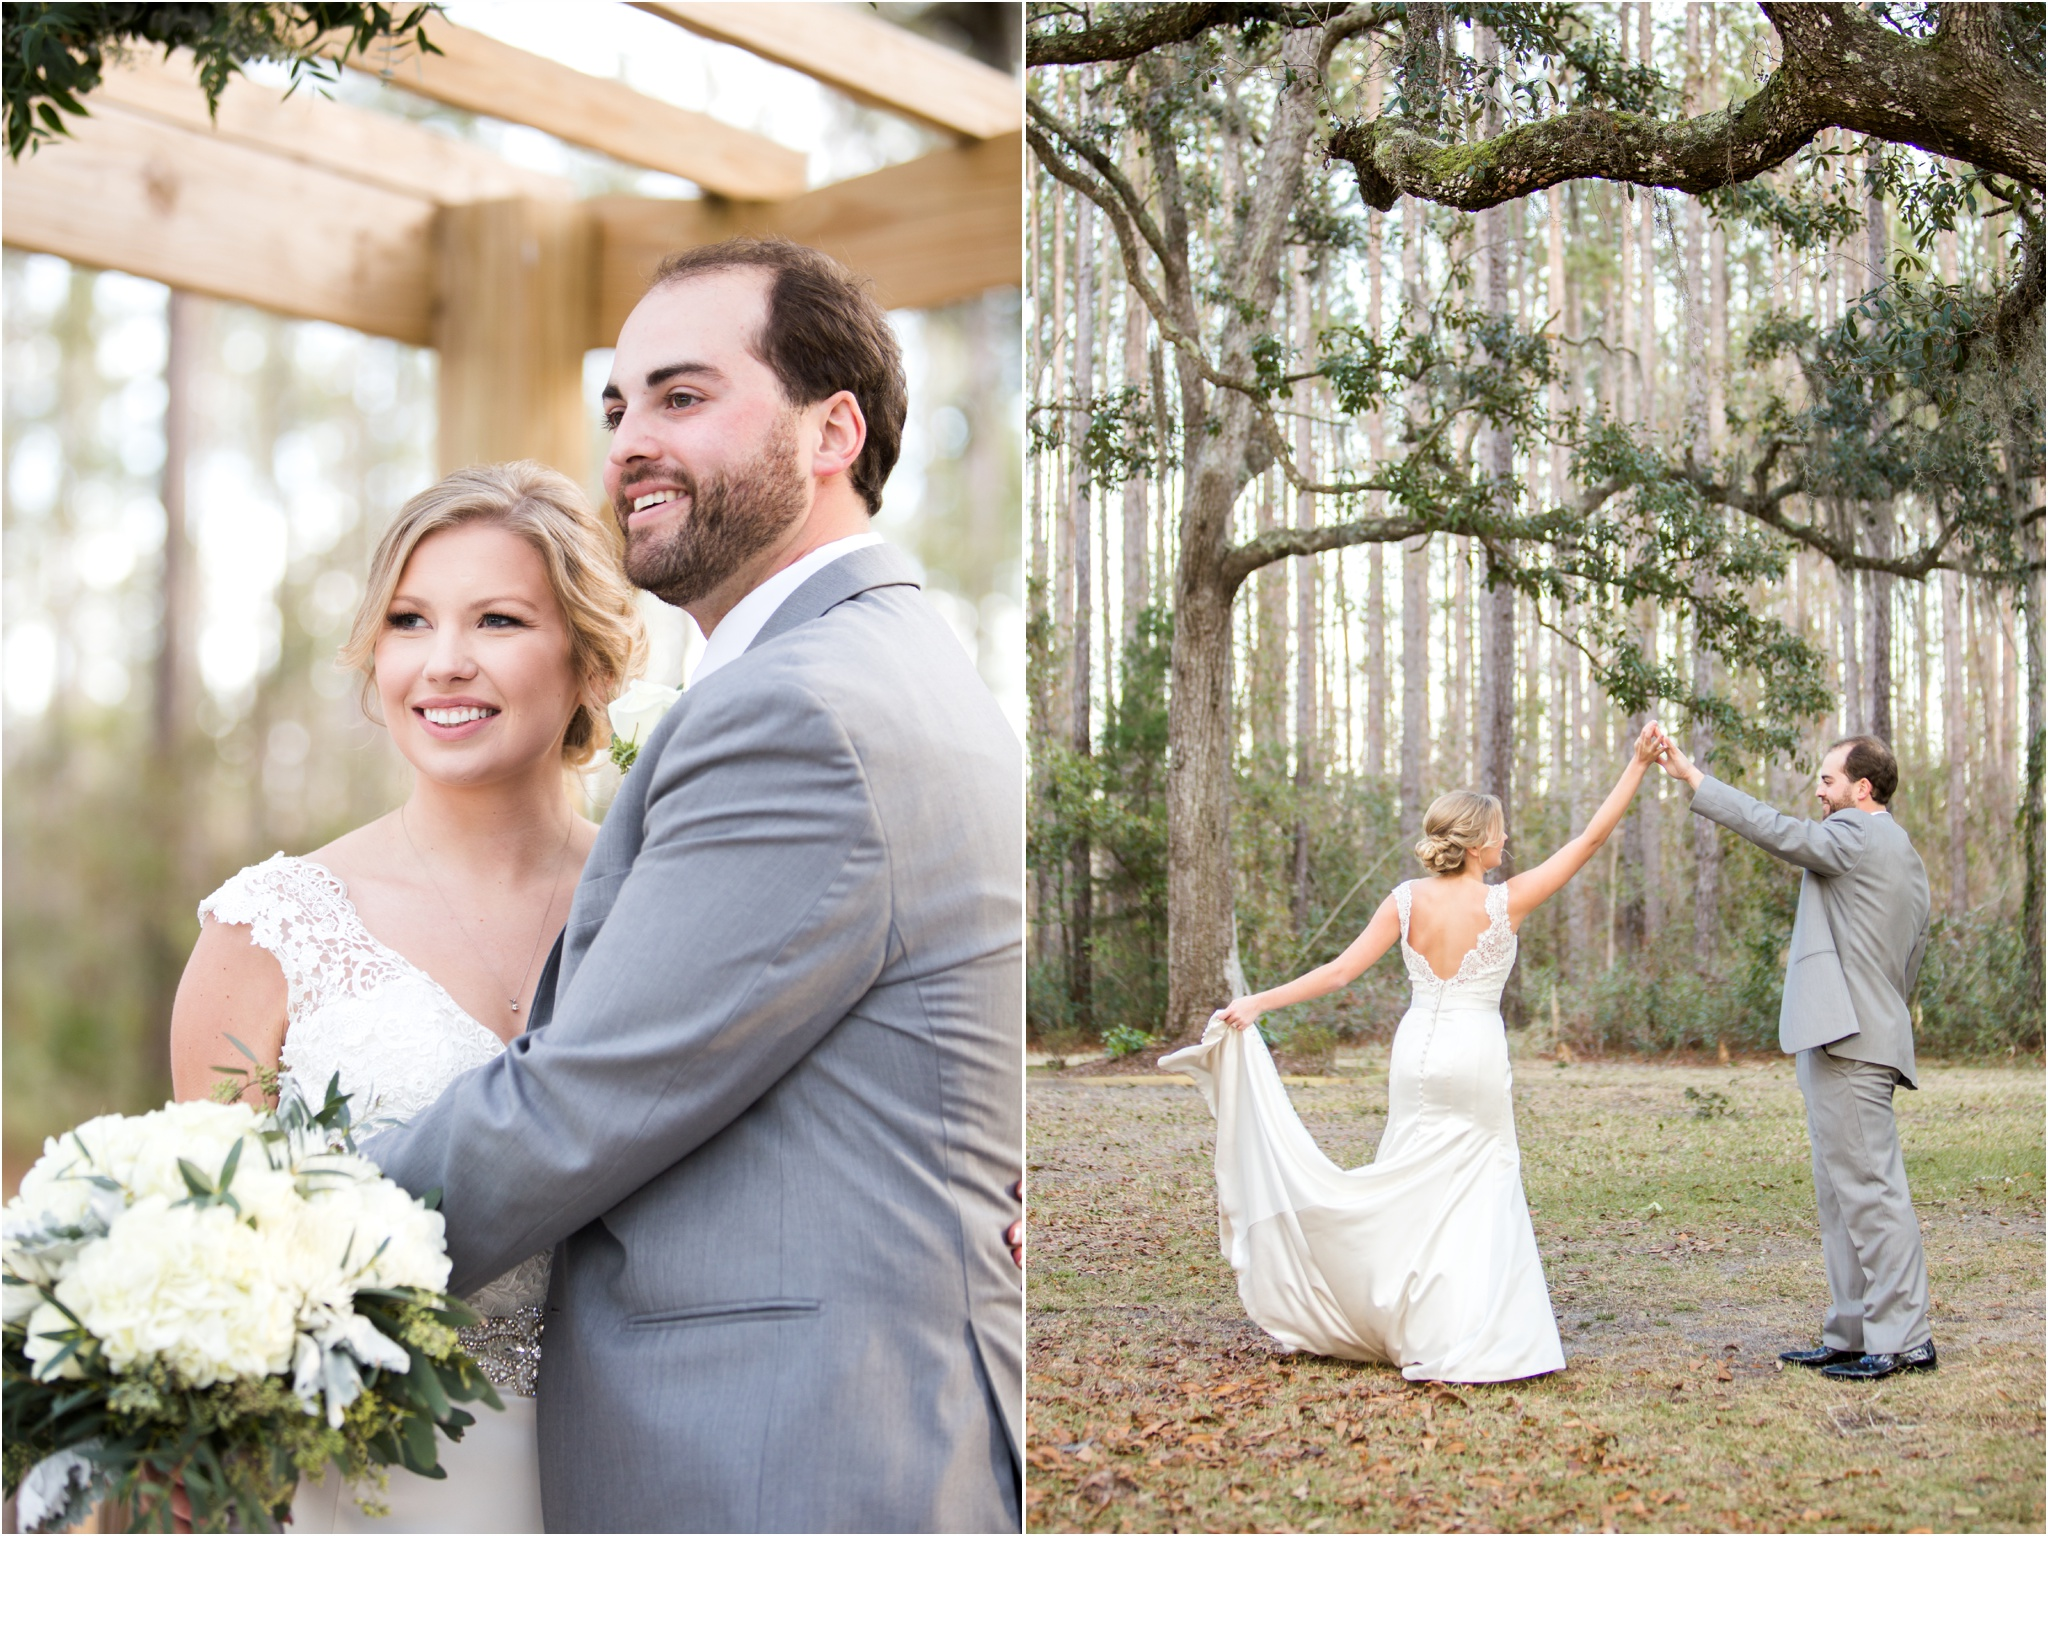 Rainey_Gregg_Photography_St._Simons_Island_Georgia_California_Wedding_Portrait_Photography_0498.jpg